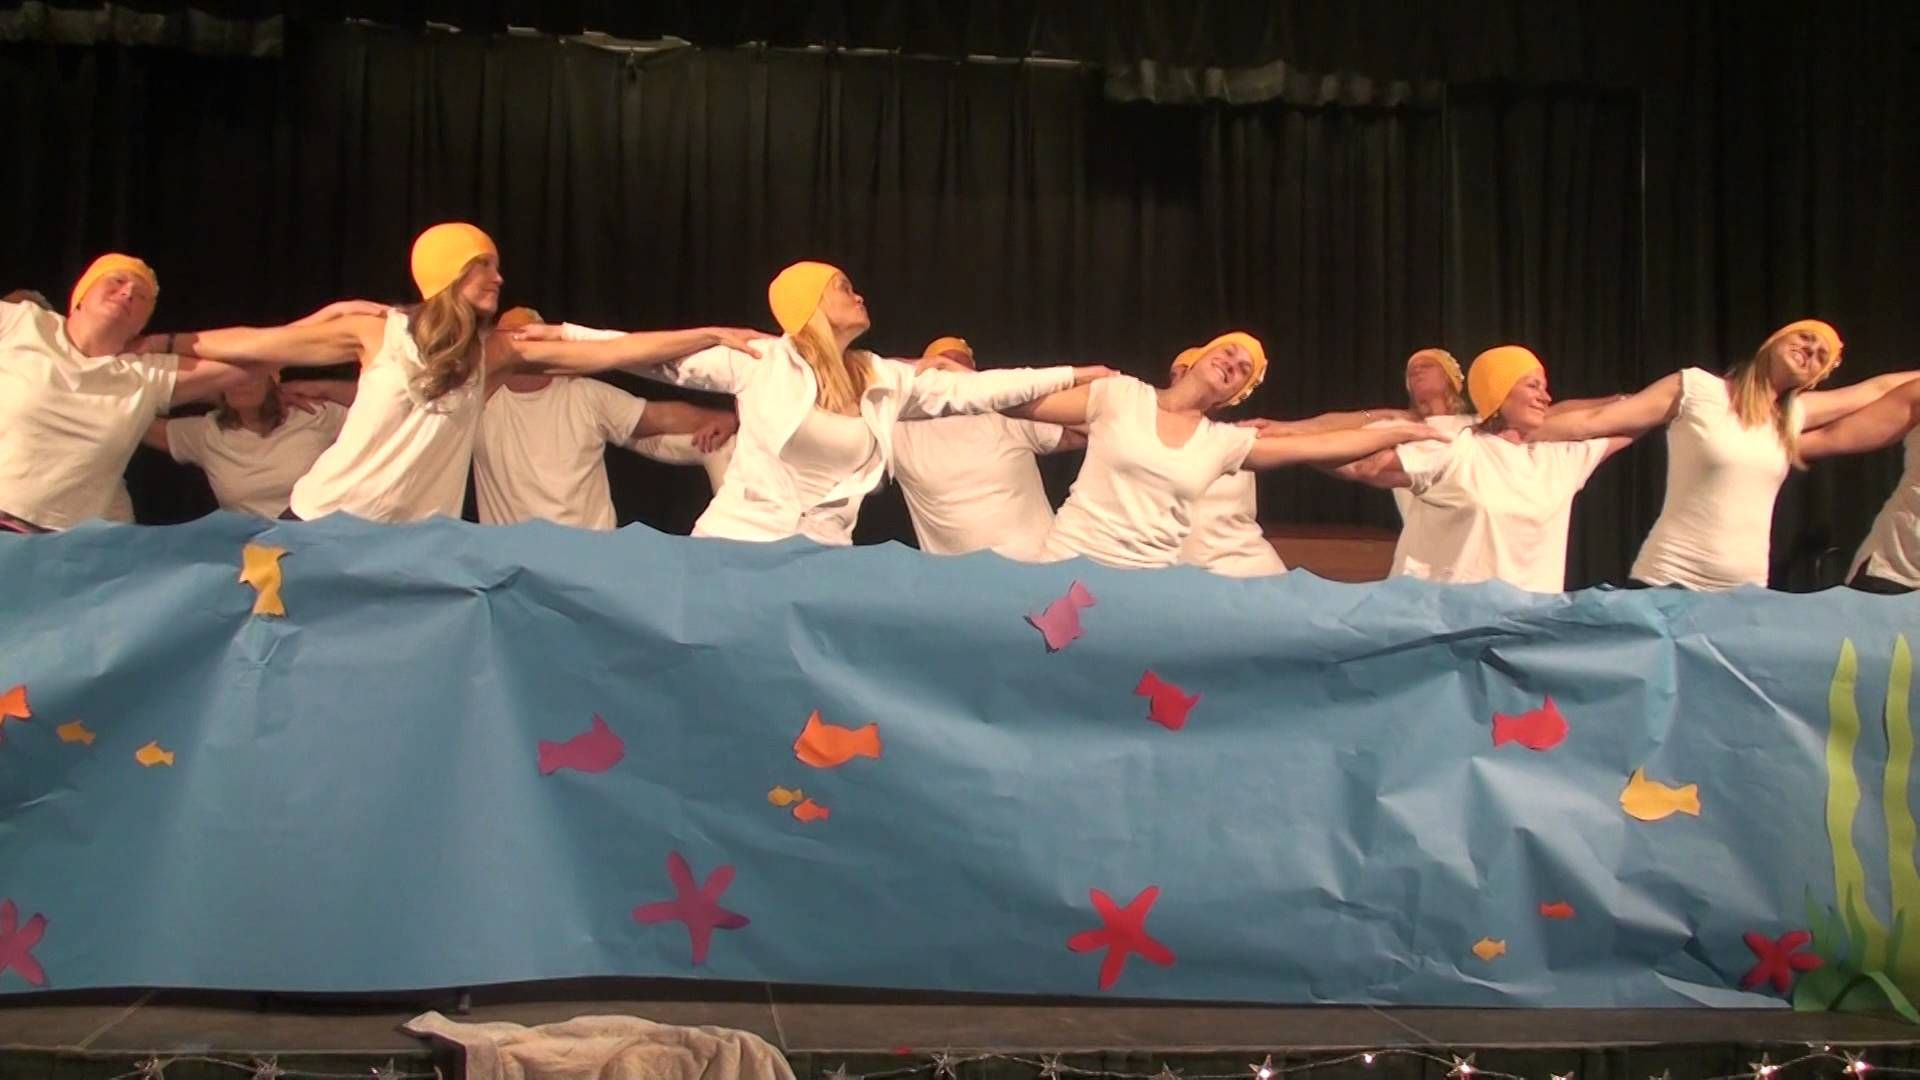 30+ Talent Show Ideas for Kids Who Love Performing! |Talent Show Funny